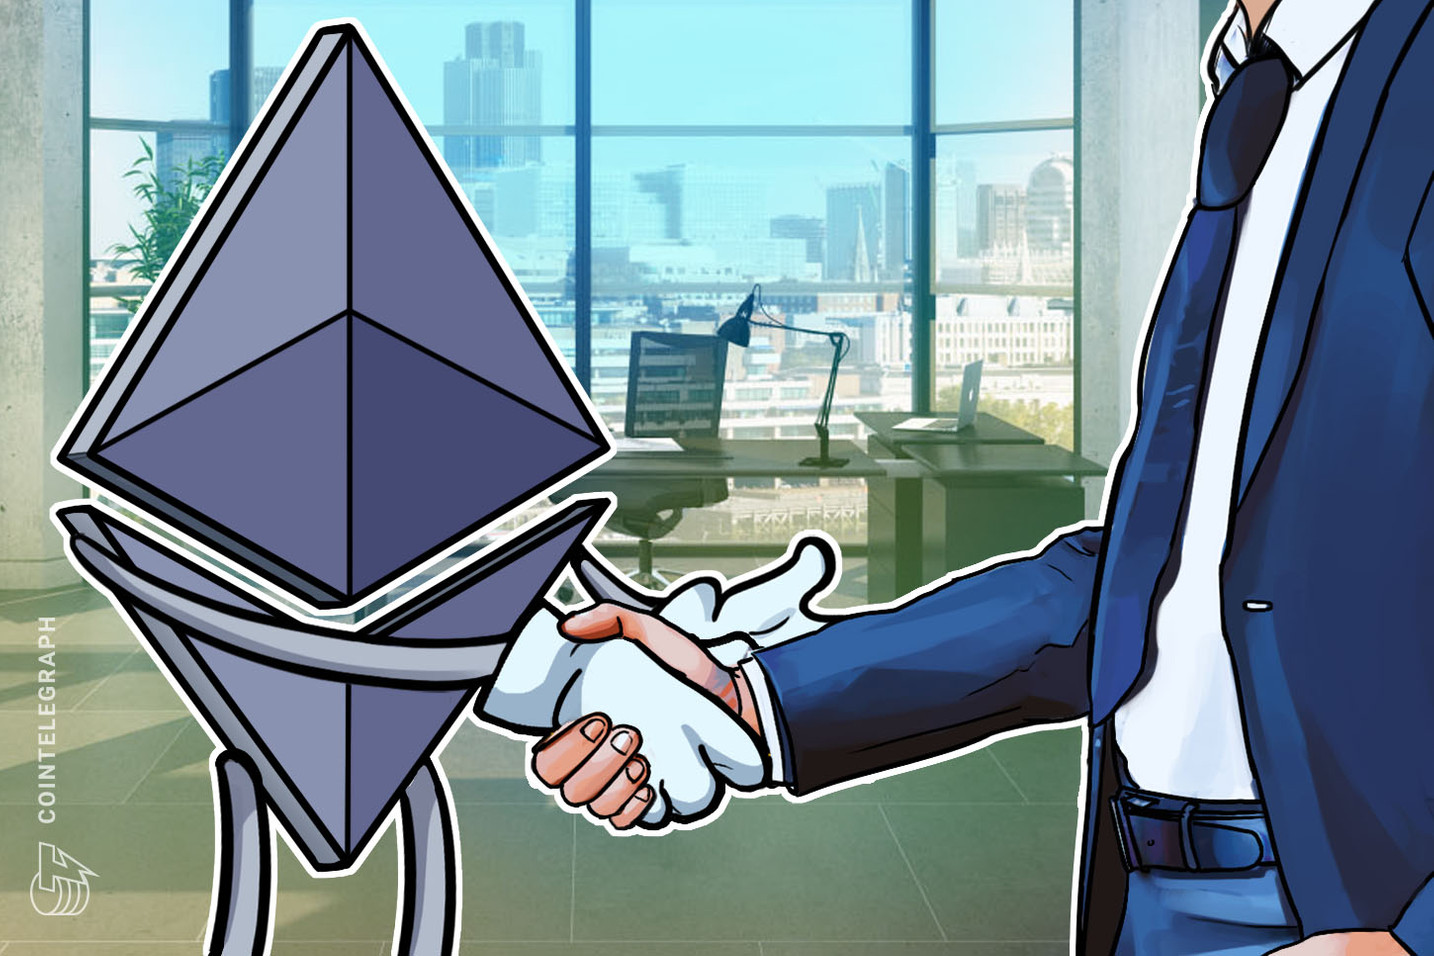 Reddit Asks Ethereum Community for Help to Scale Tokens for 430M Users